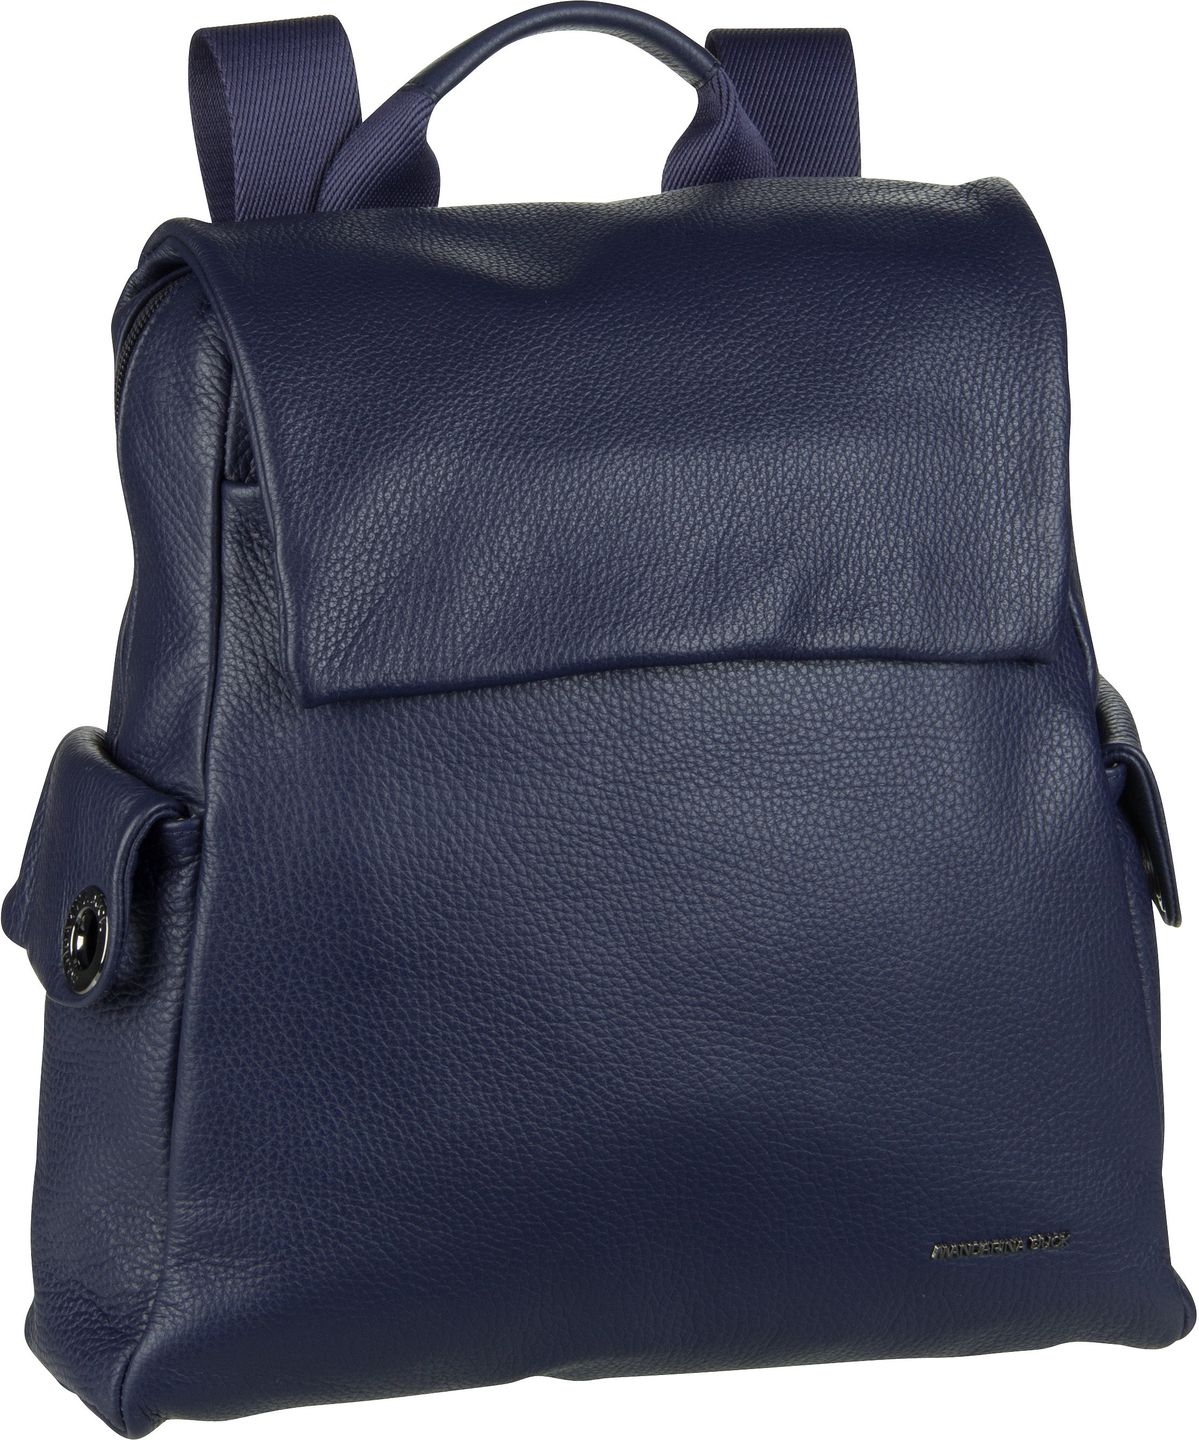 Rucksack / Daypack Mellow Leather Backpack FZT92 Dress Blue